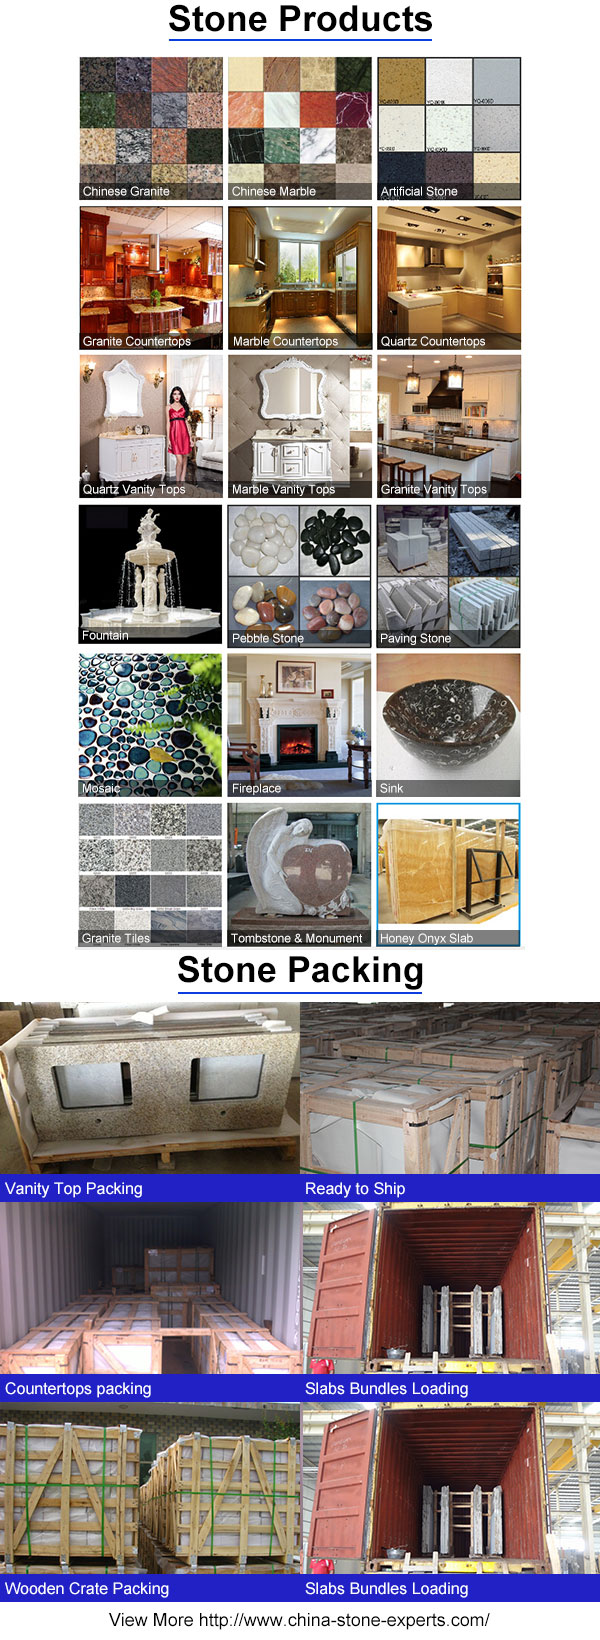 Yeyang Stone Products+Packing-2